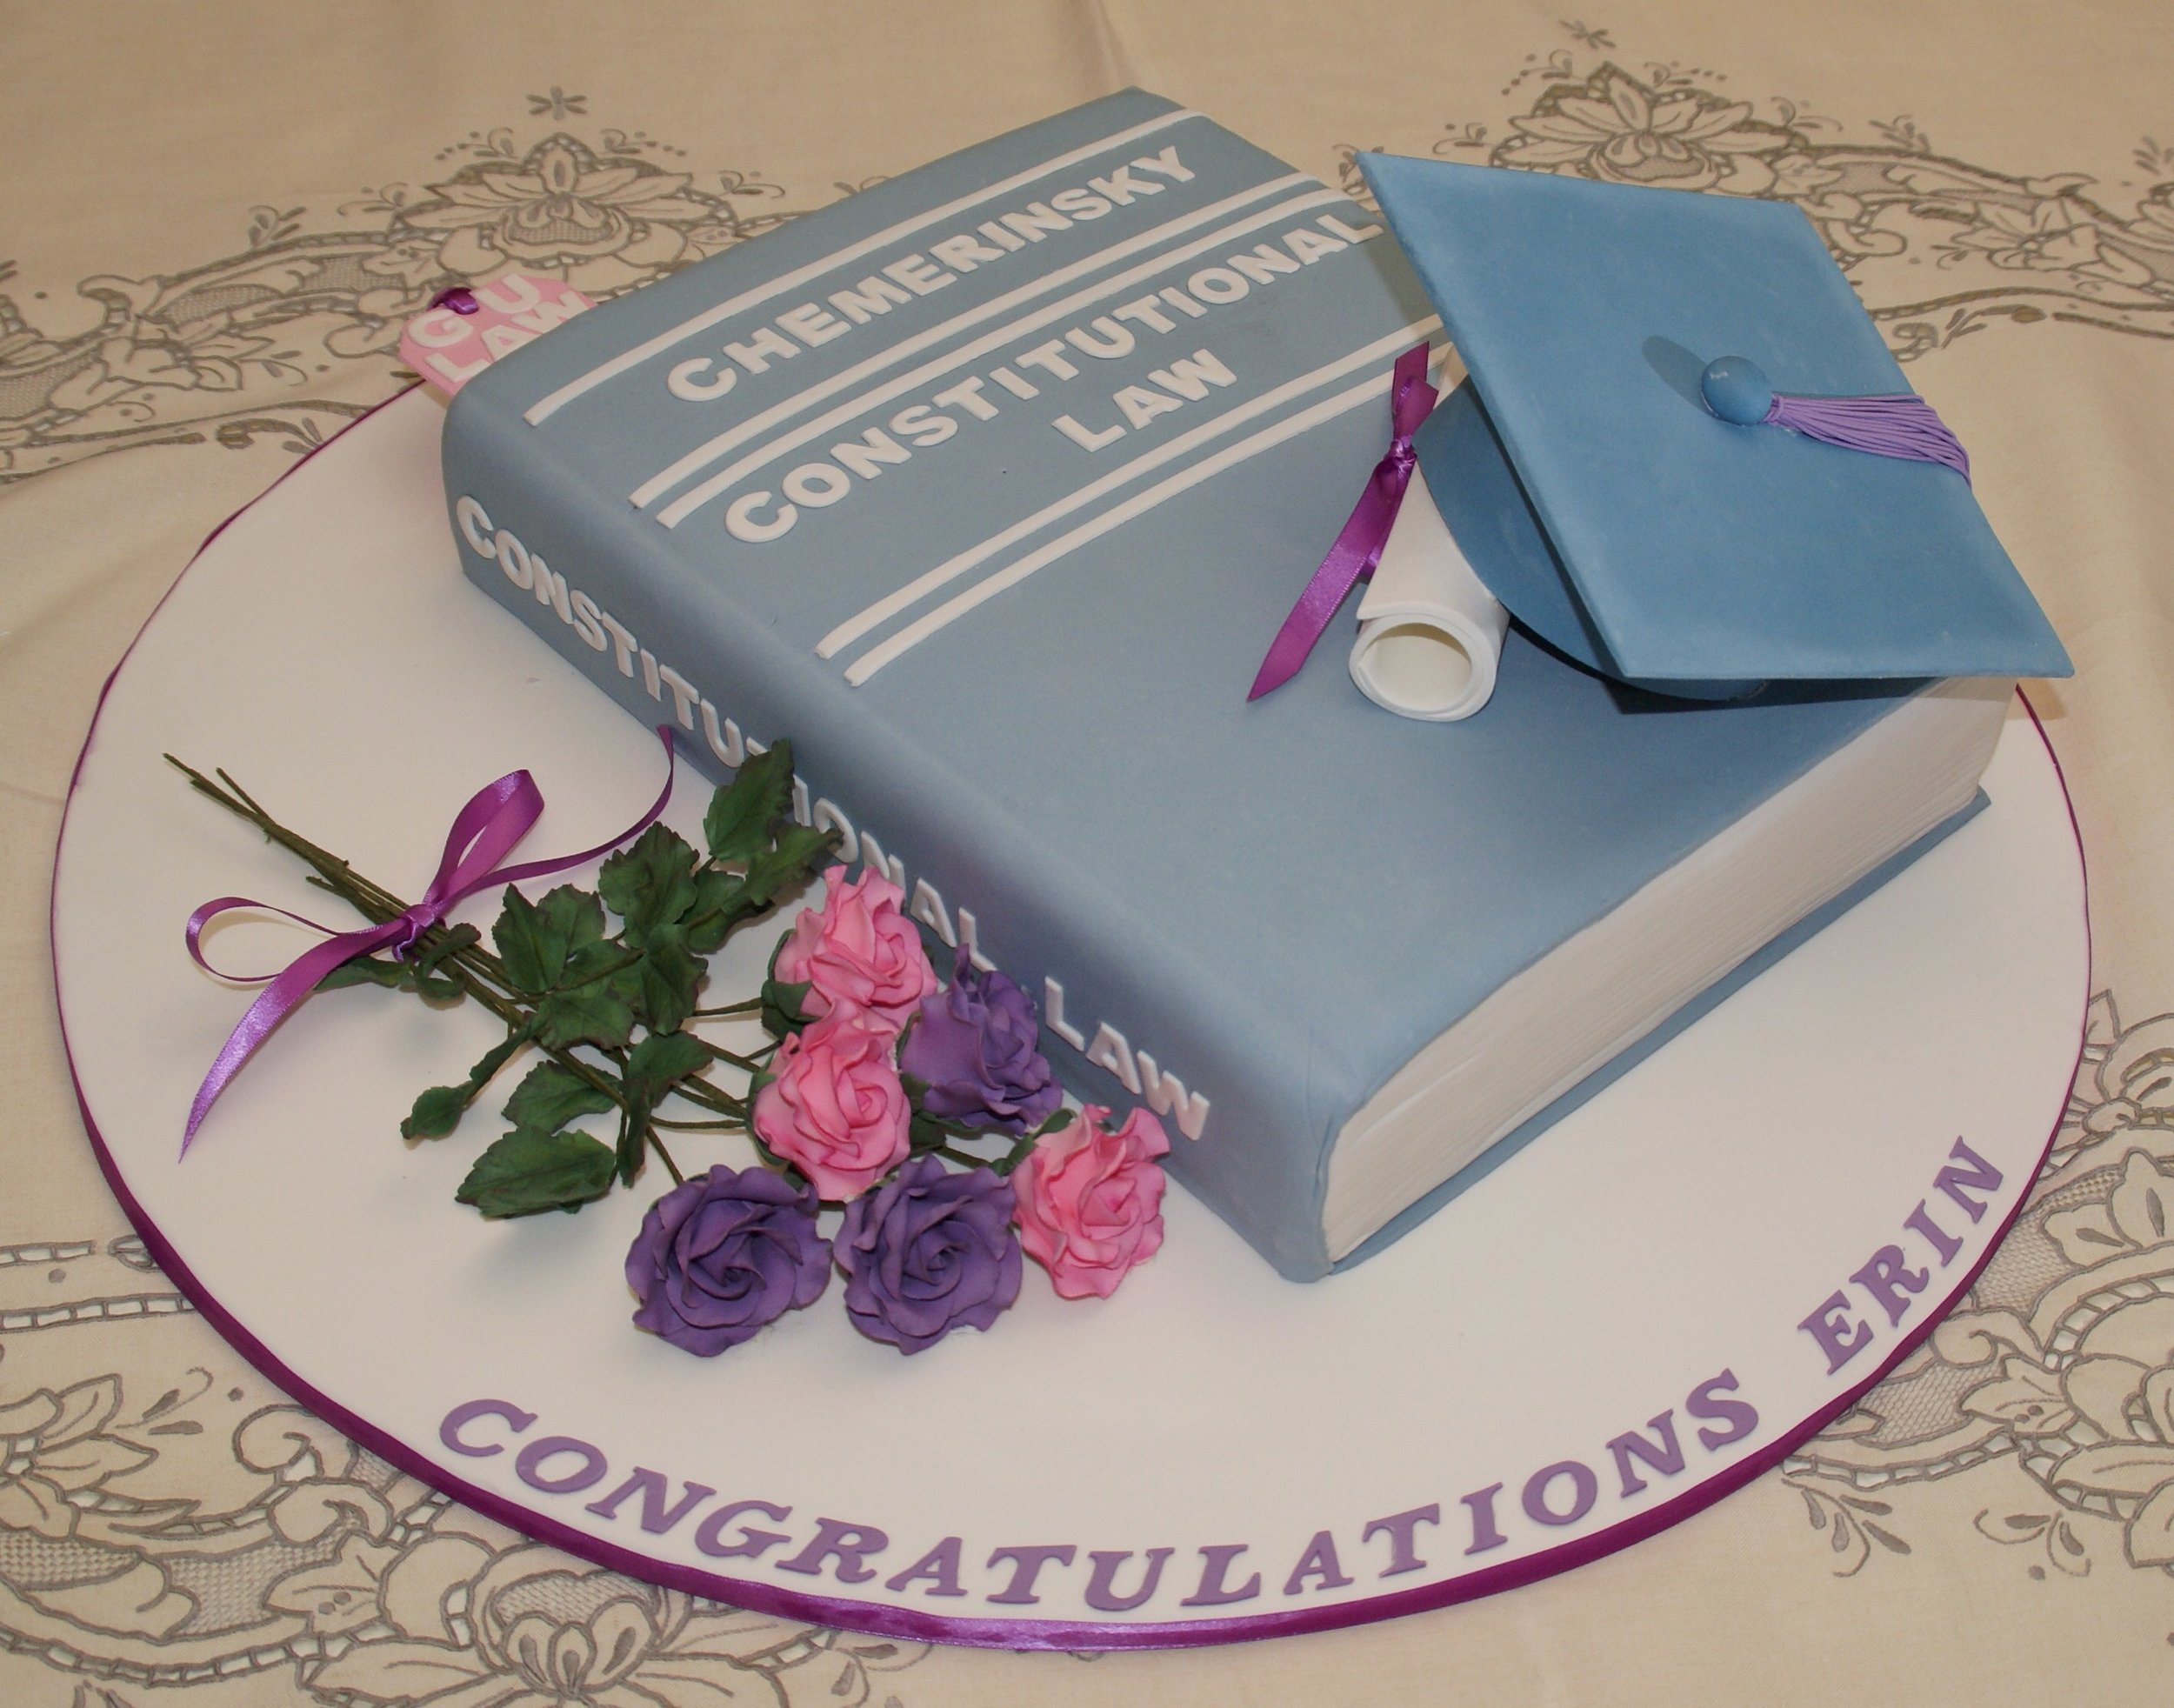 Law-school graduation cake